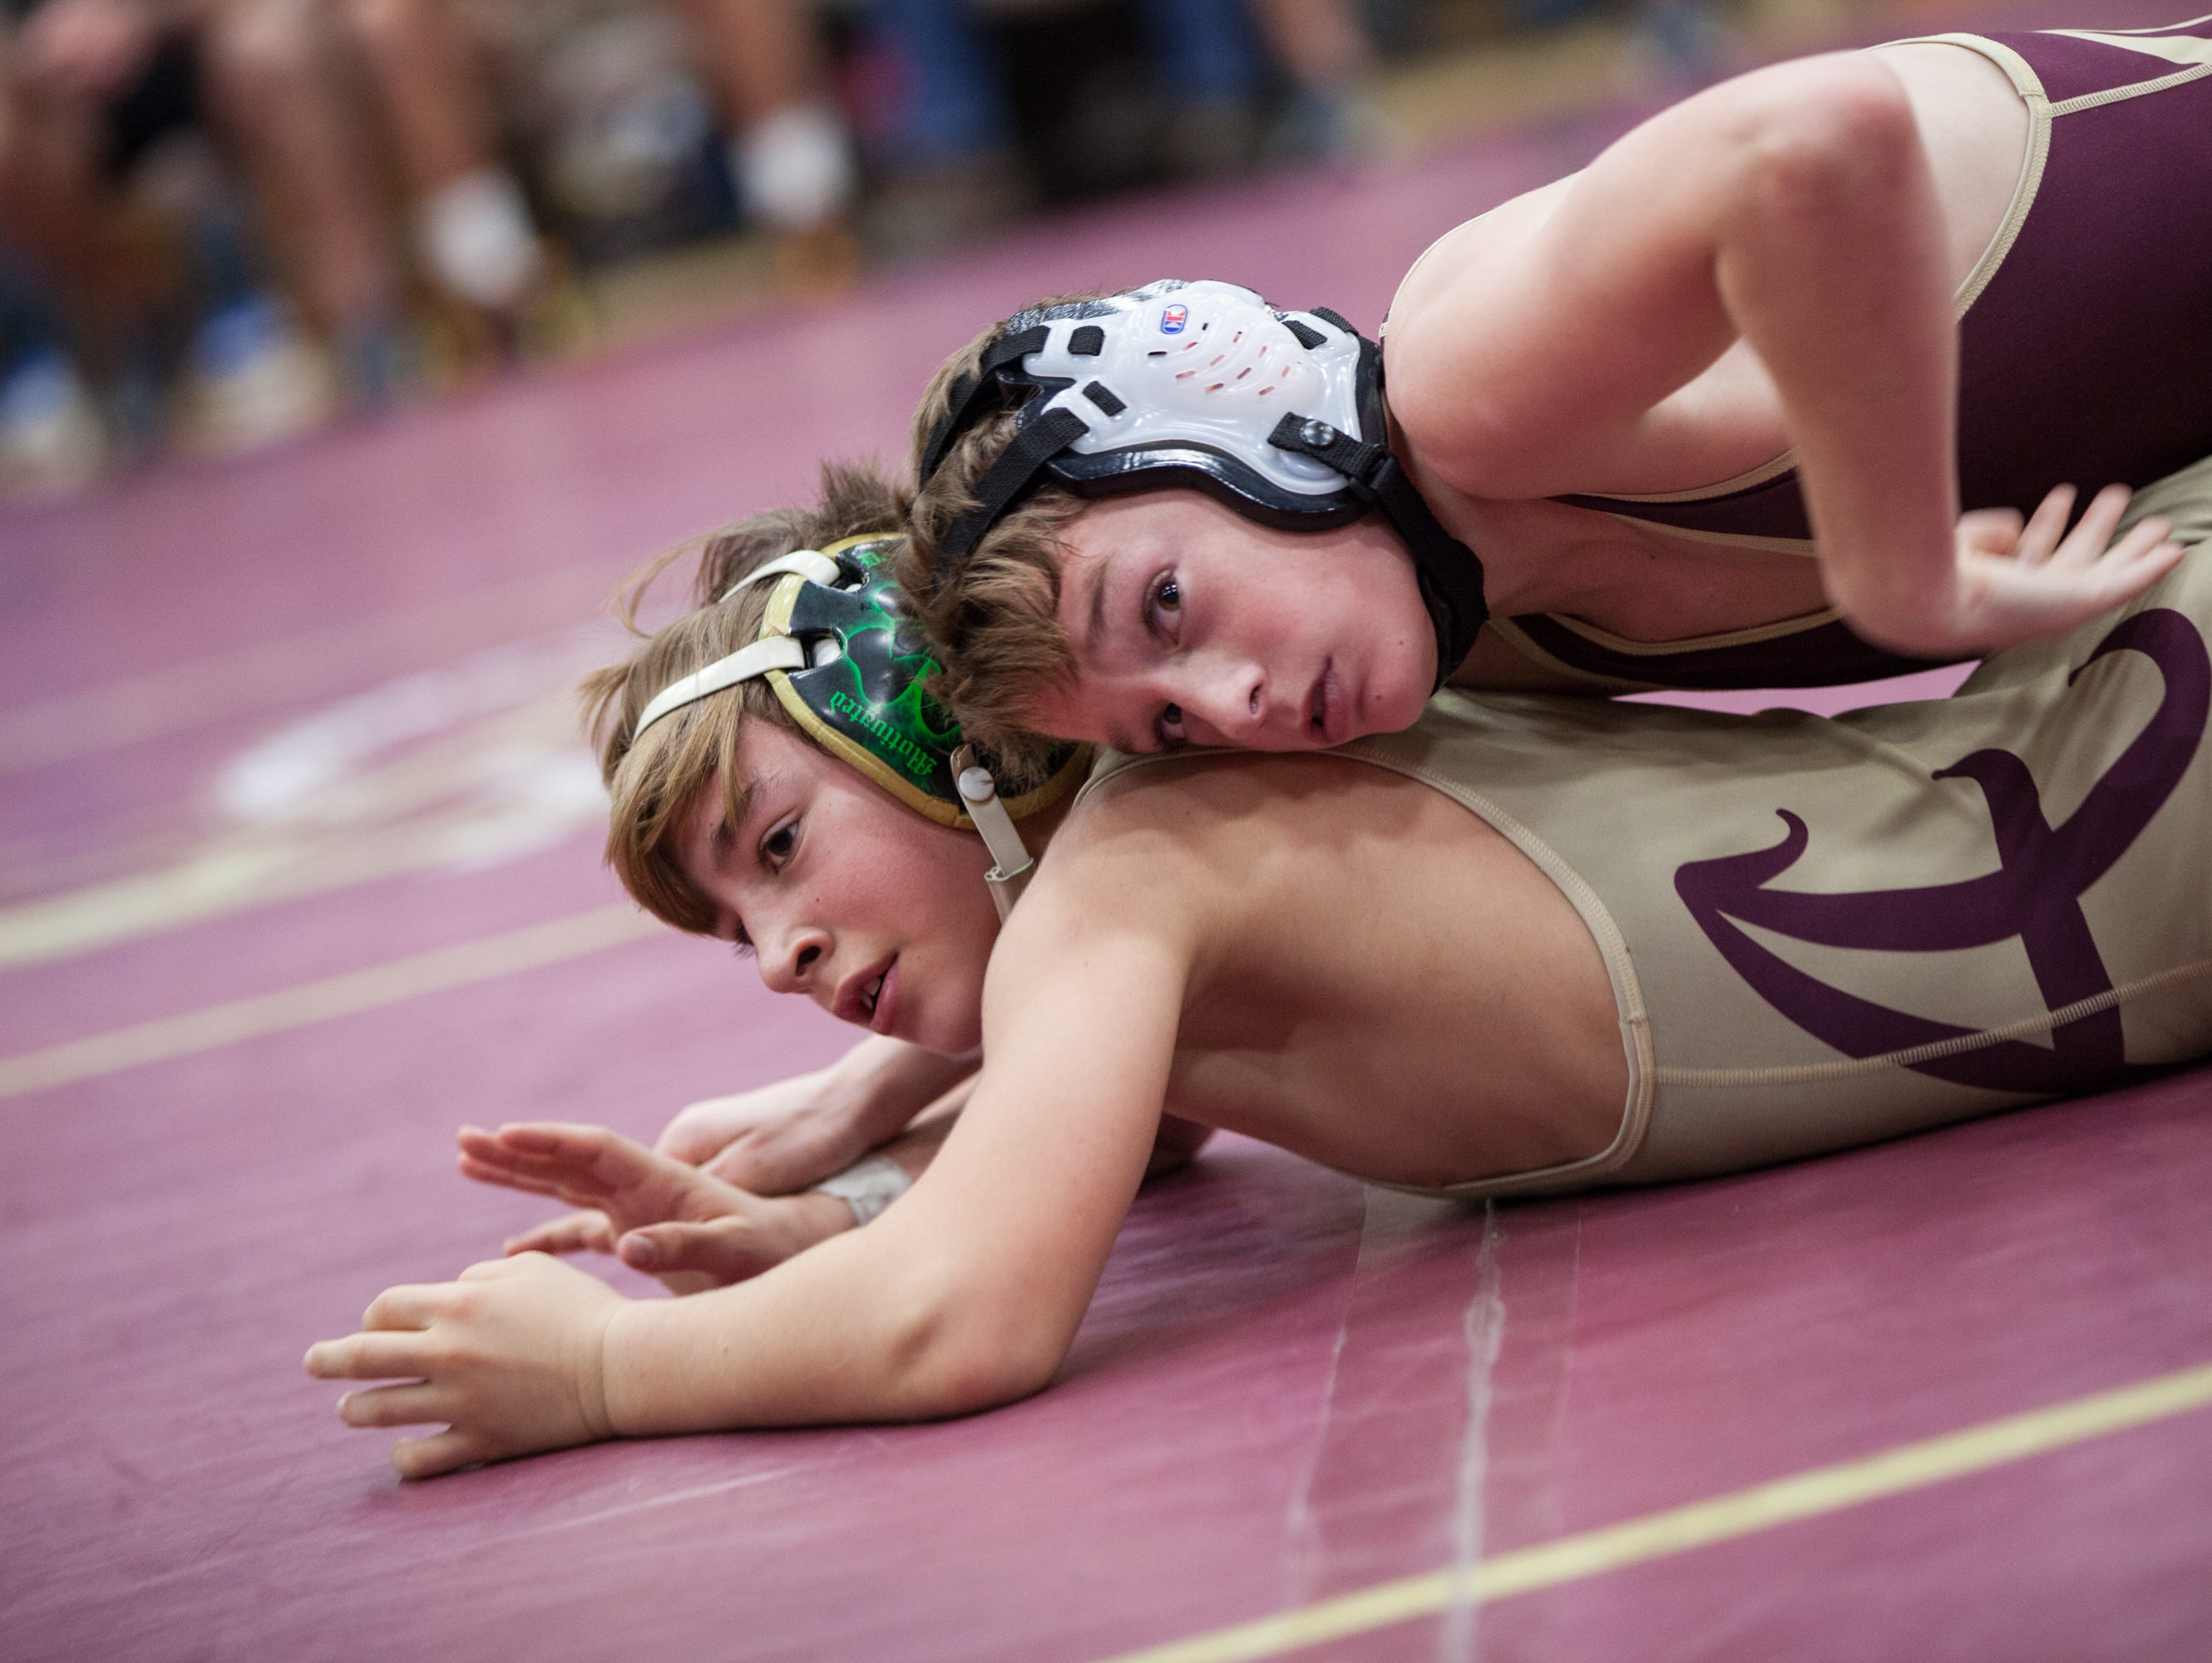 Arlington High School wrestlers Dennis Robin, above, and Tim Bova tangle in the 99-pound final at the Mid-Hudson Invitational at Arlington on Dec. 28.